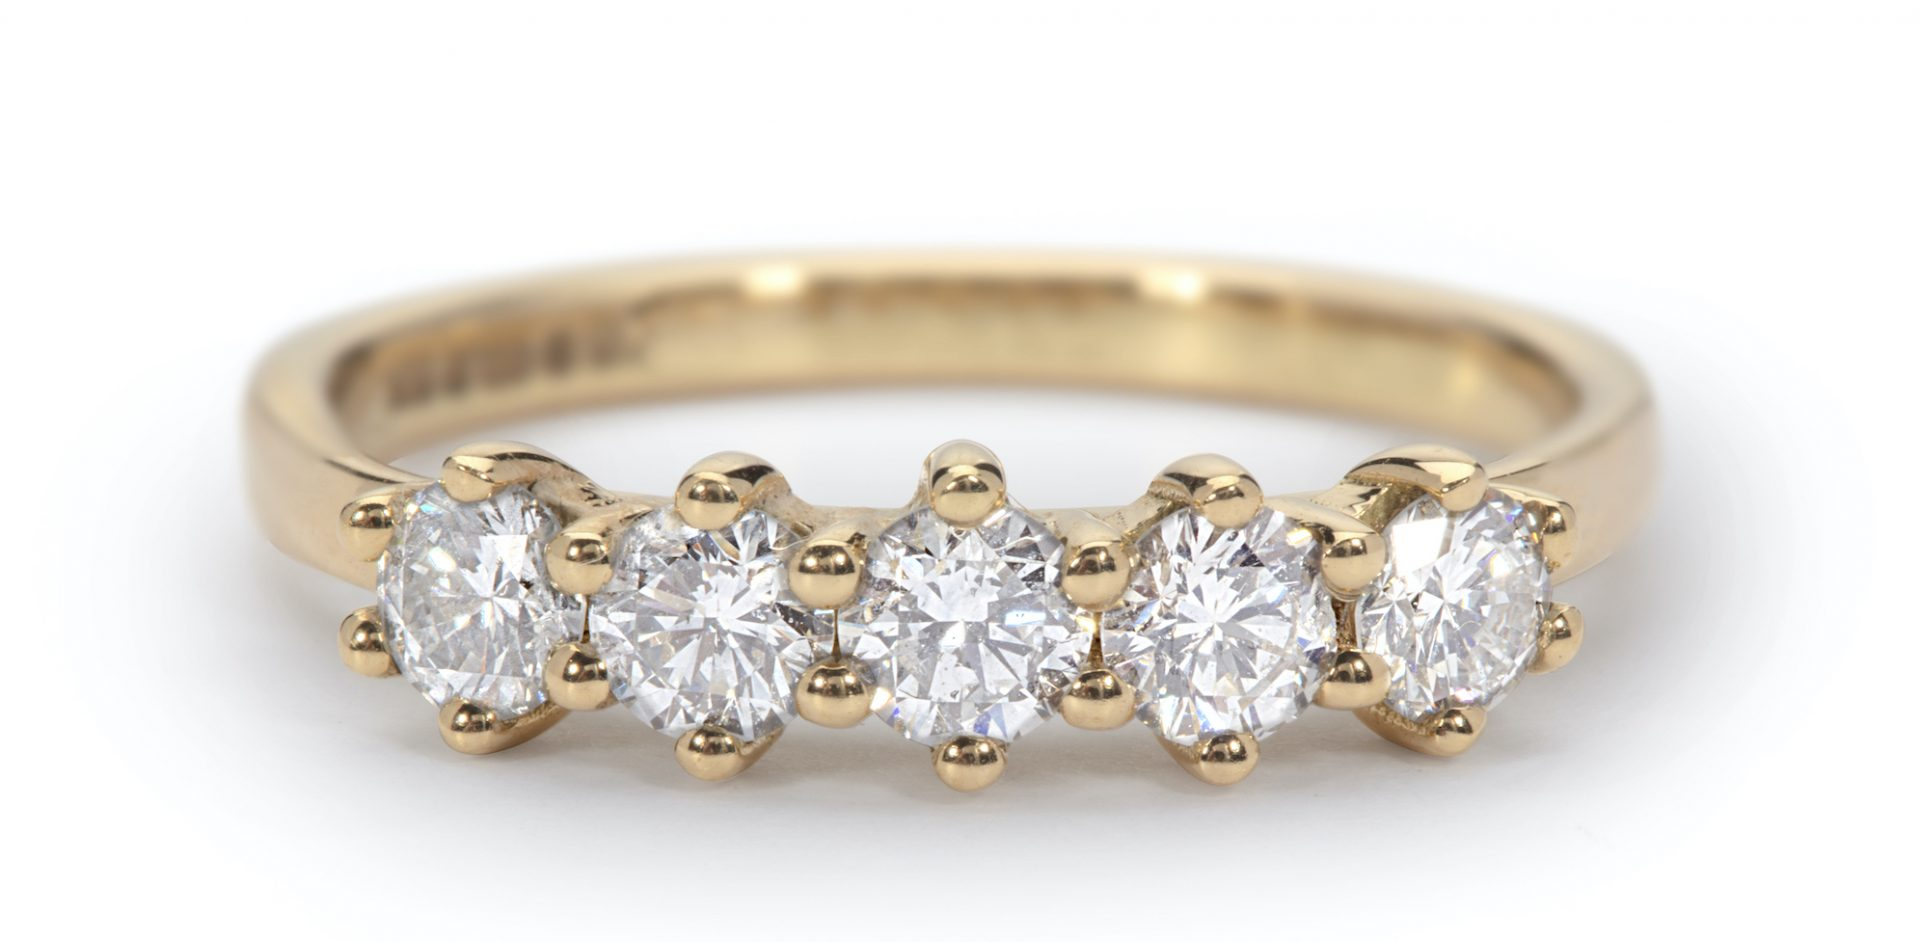 Jane's Five Stone Eternity Ring